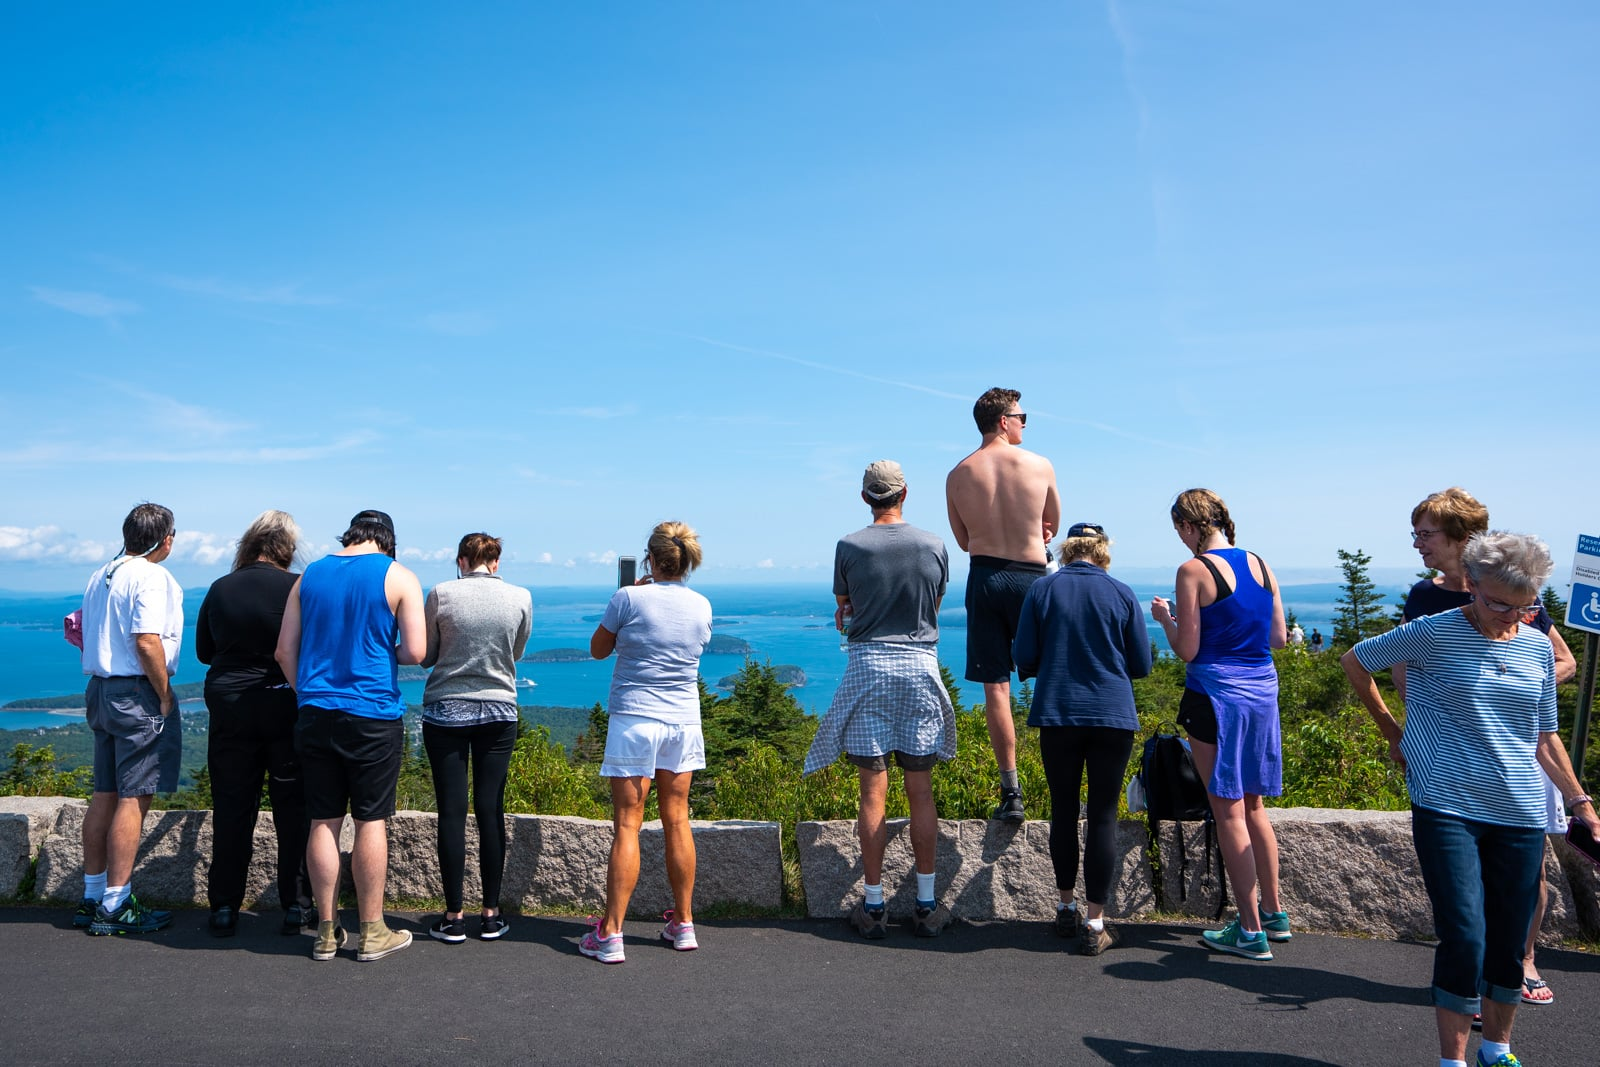 Tourists in Acadia National Park, Maine